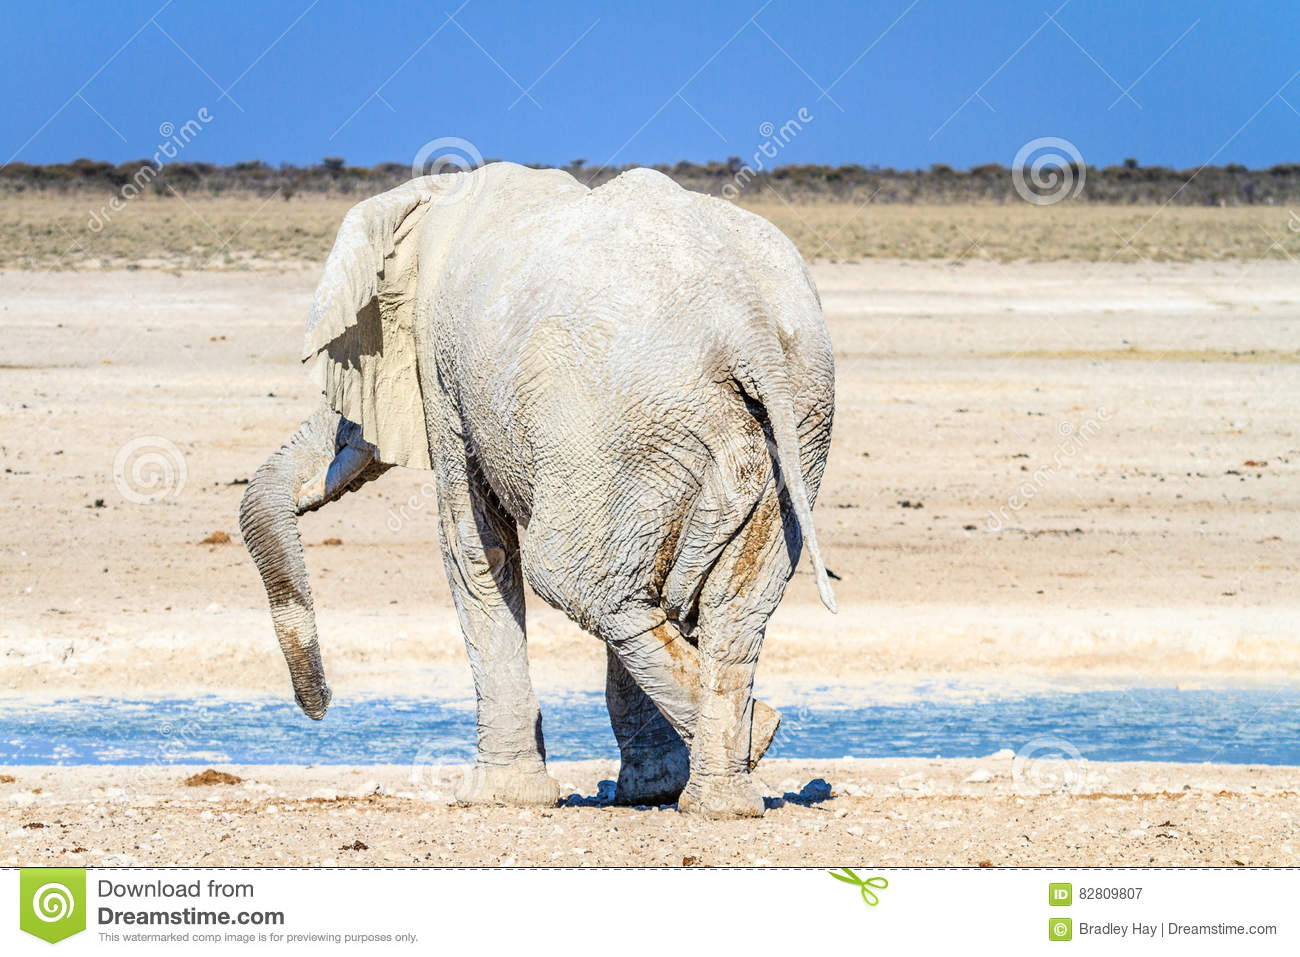 African elephant relaxing at waterhole in Etosha National Park, Namibia, Africa